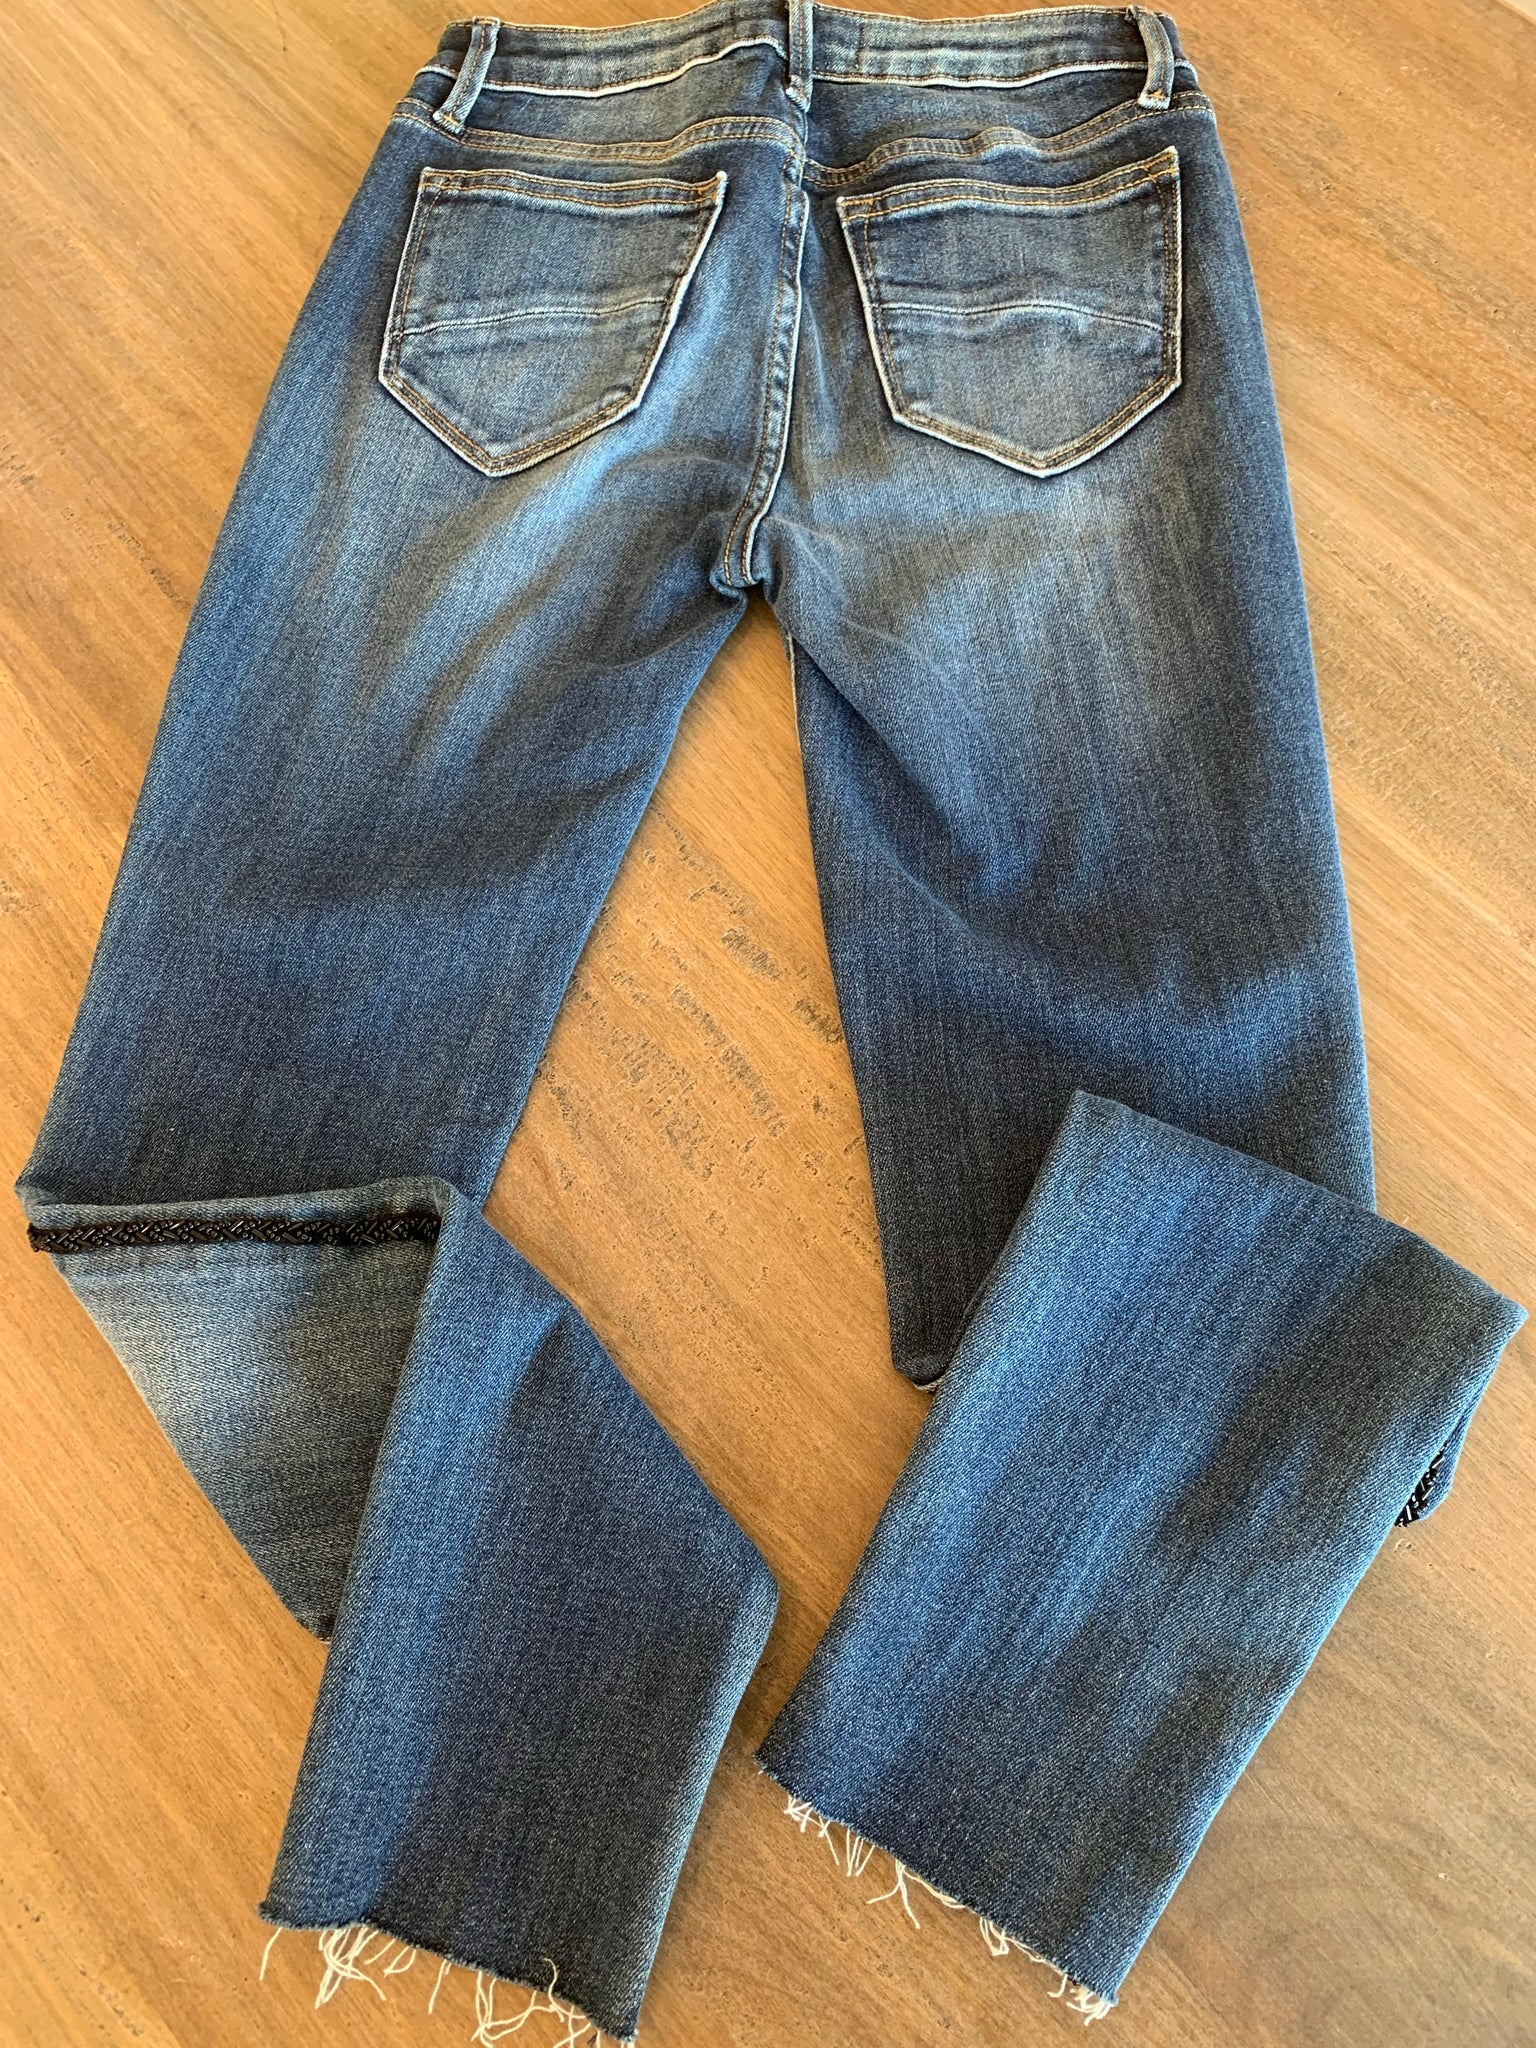 Driftwood Black Sequence Jeans - Showroom56